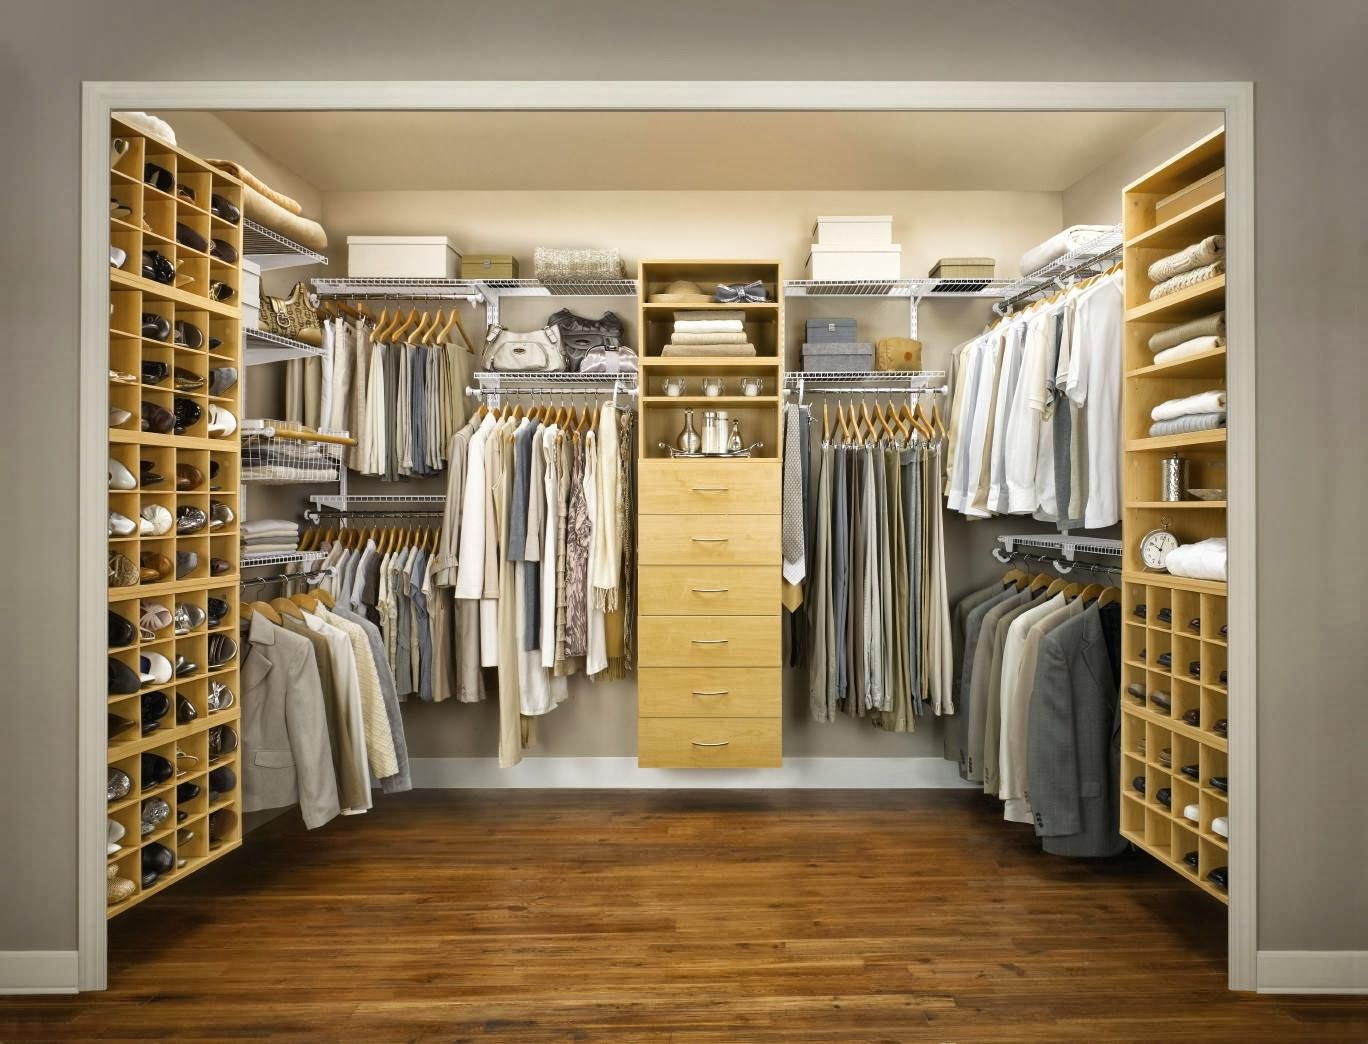 Bedroom Closet Design Plans Bedroom Closet Design Plans  Best Way To Paint Wood Furniture